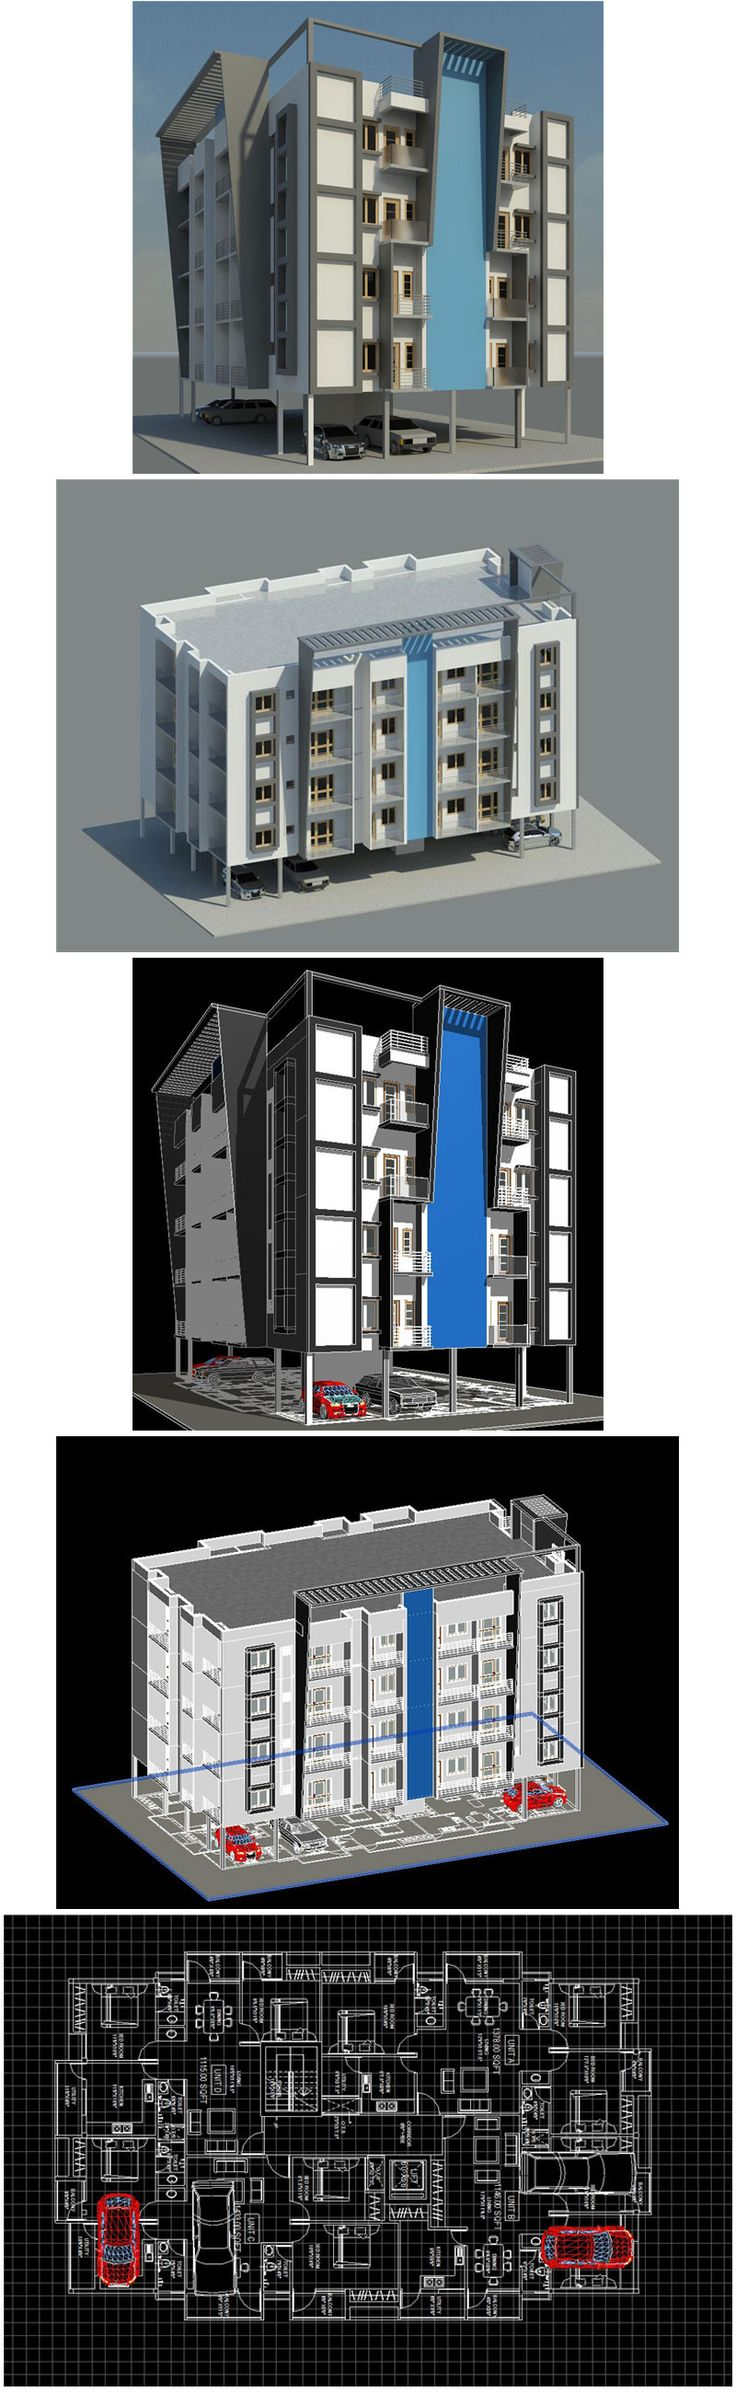 25 best ideas about building information modeling on for Architecture firms that use revit